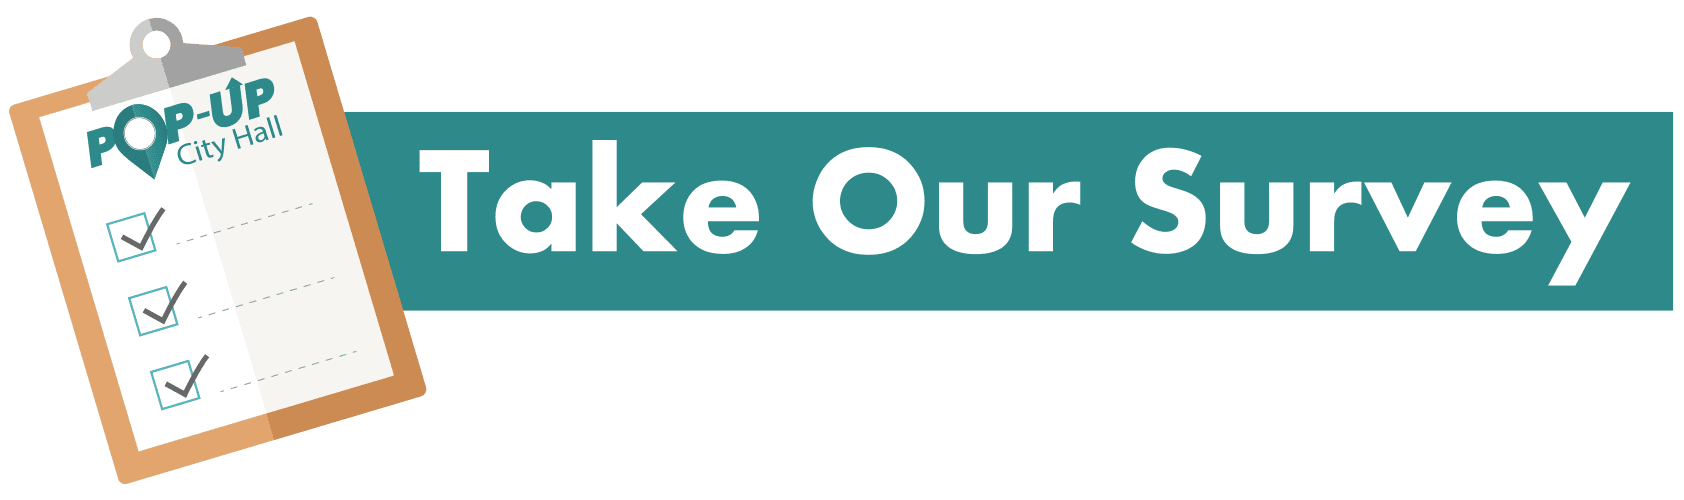 TakeOurSurvey Button, teal pop up city hall logo, with clipboard vector Opens in new window